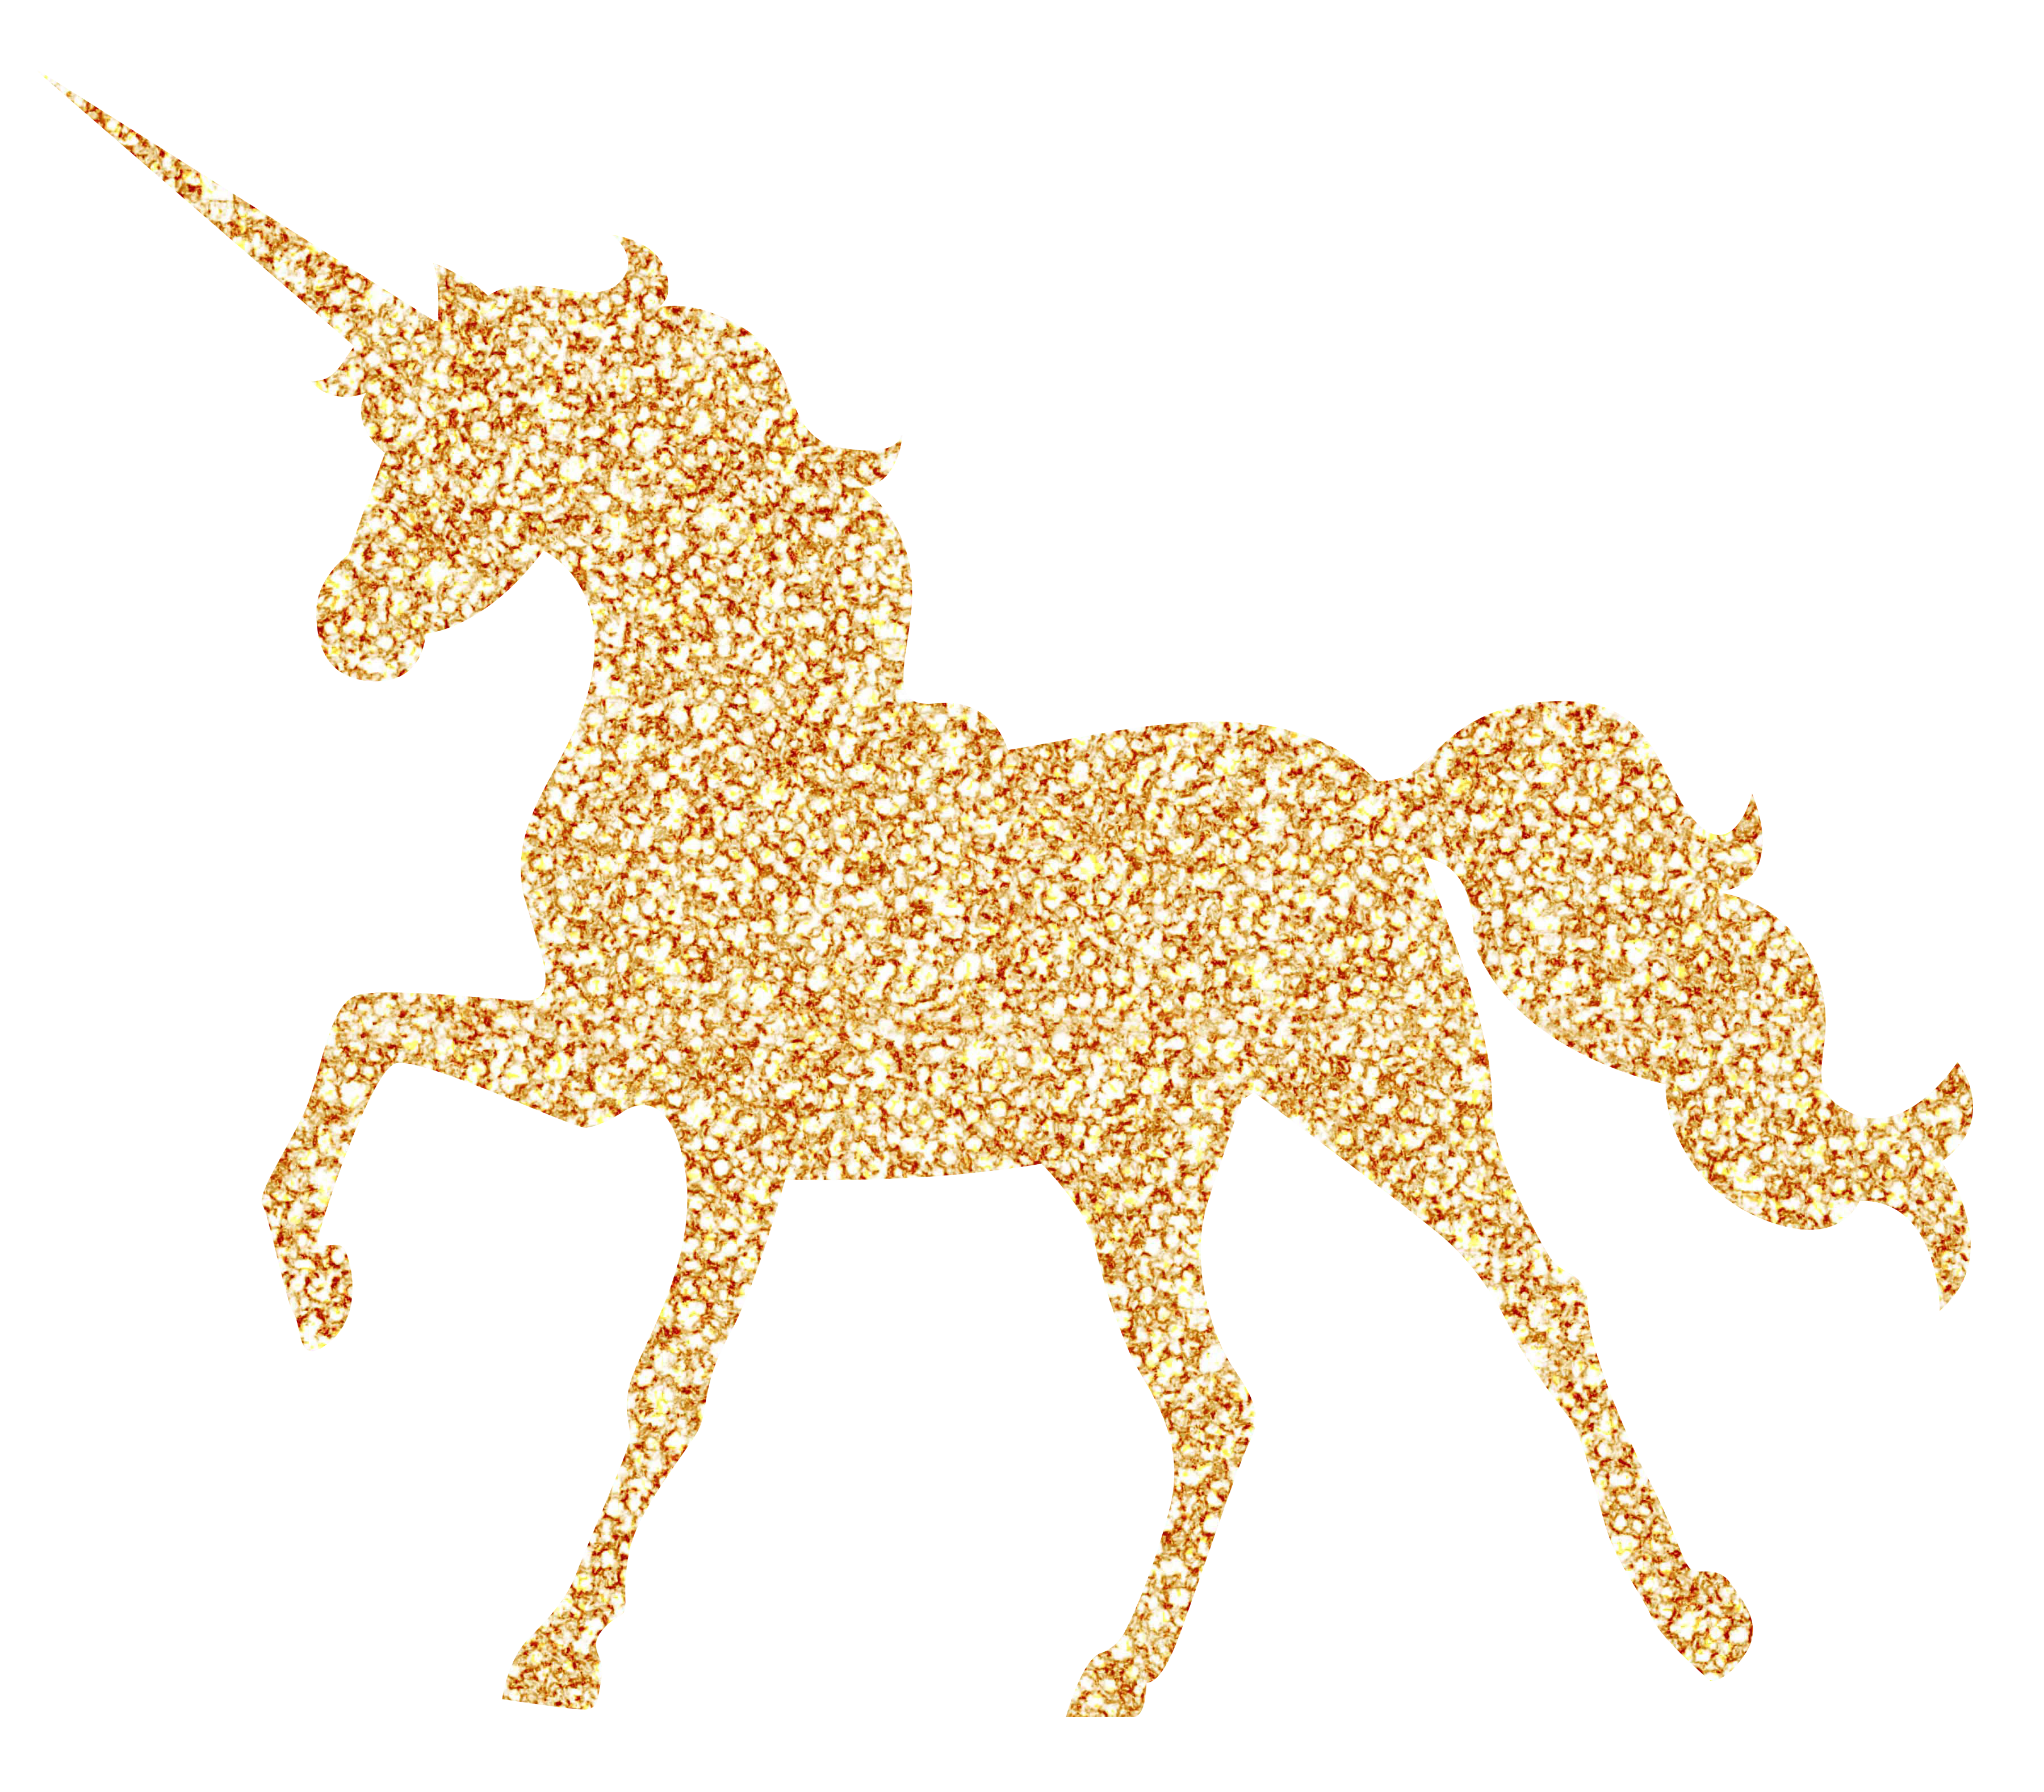 Svg unicorn sparkle. Pin by bionca johnson